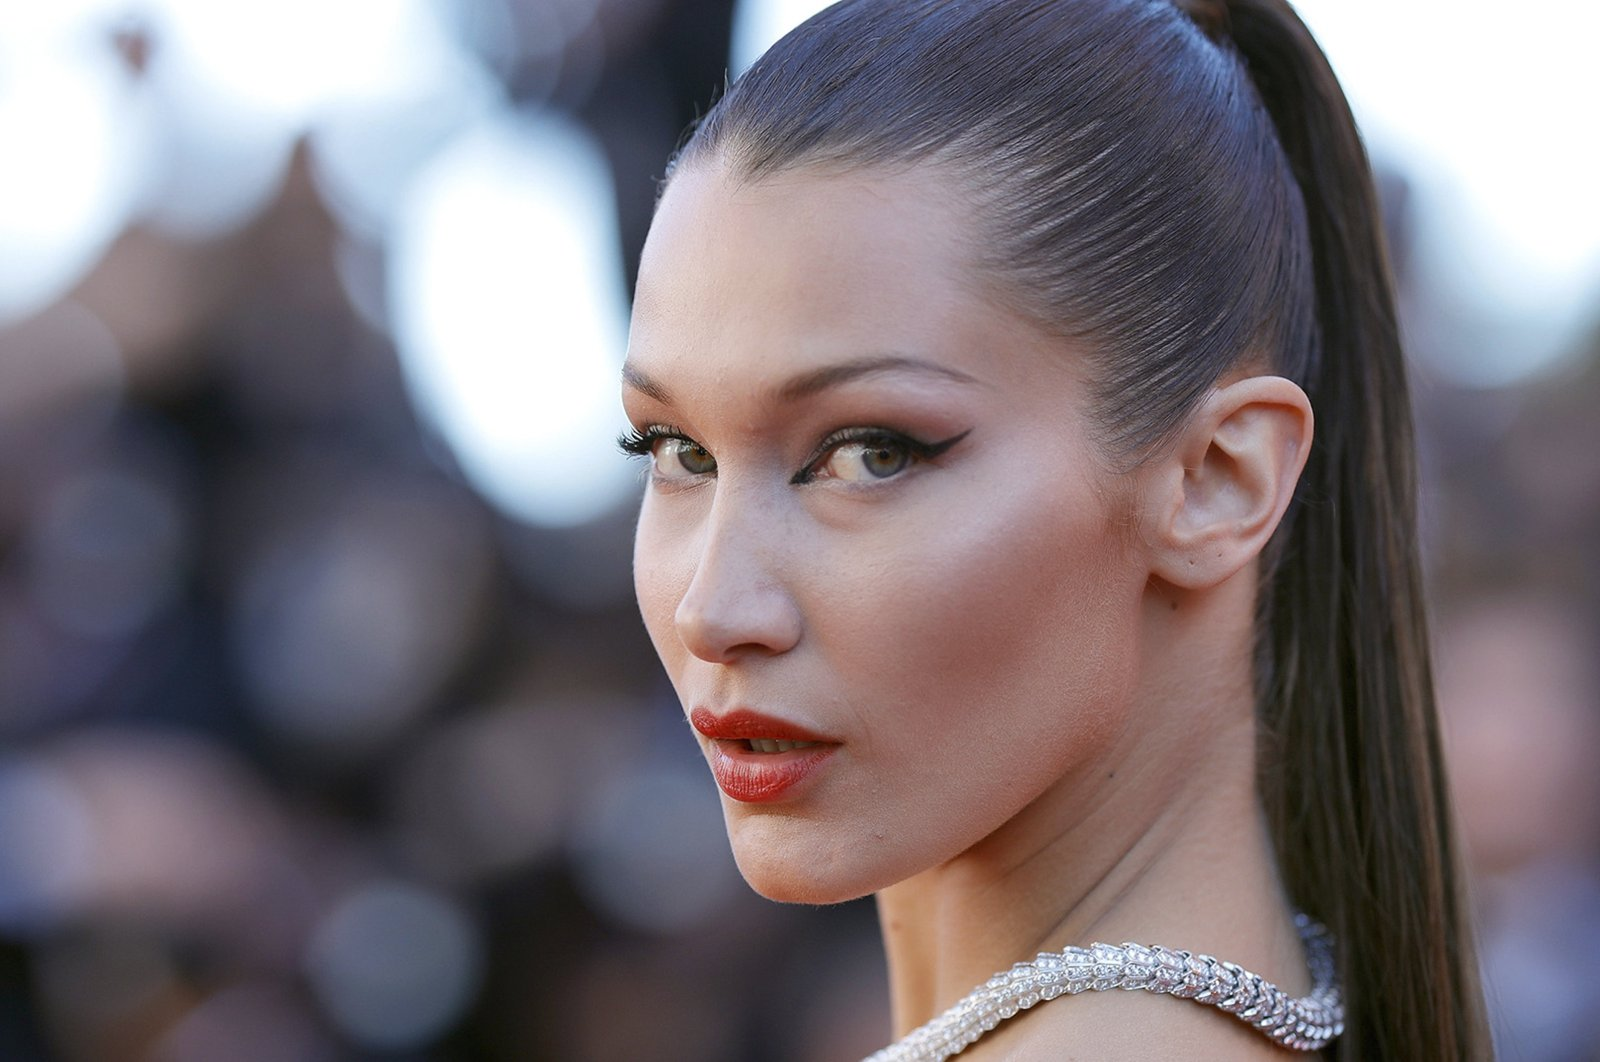 """Bella Hadid attends the """"Okja"""" screening during the 70th annual Cannes Film Festival at Palais des Festivals in Cannes, France, May 19, 2017.  (Getty Images)"""